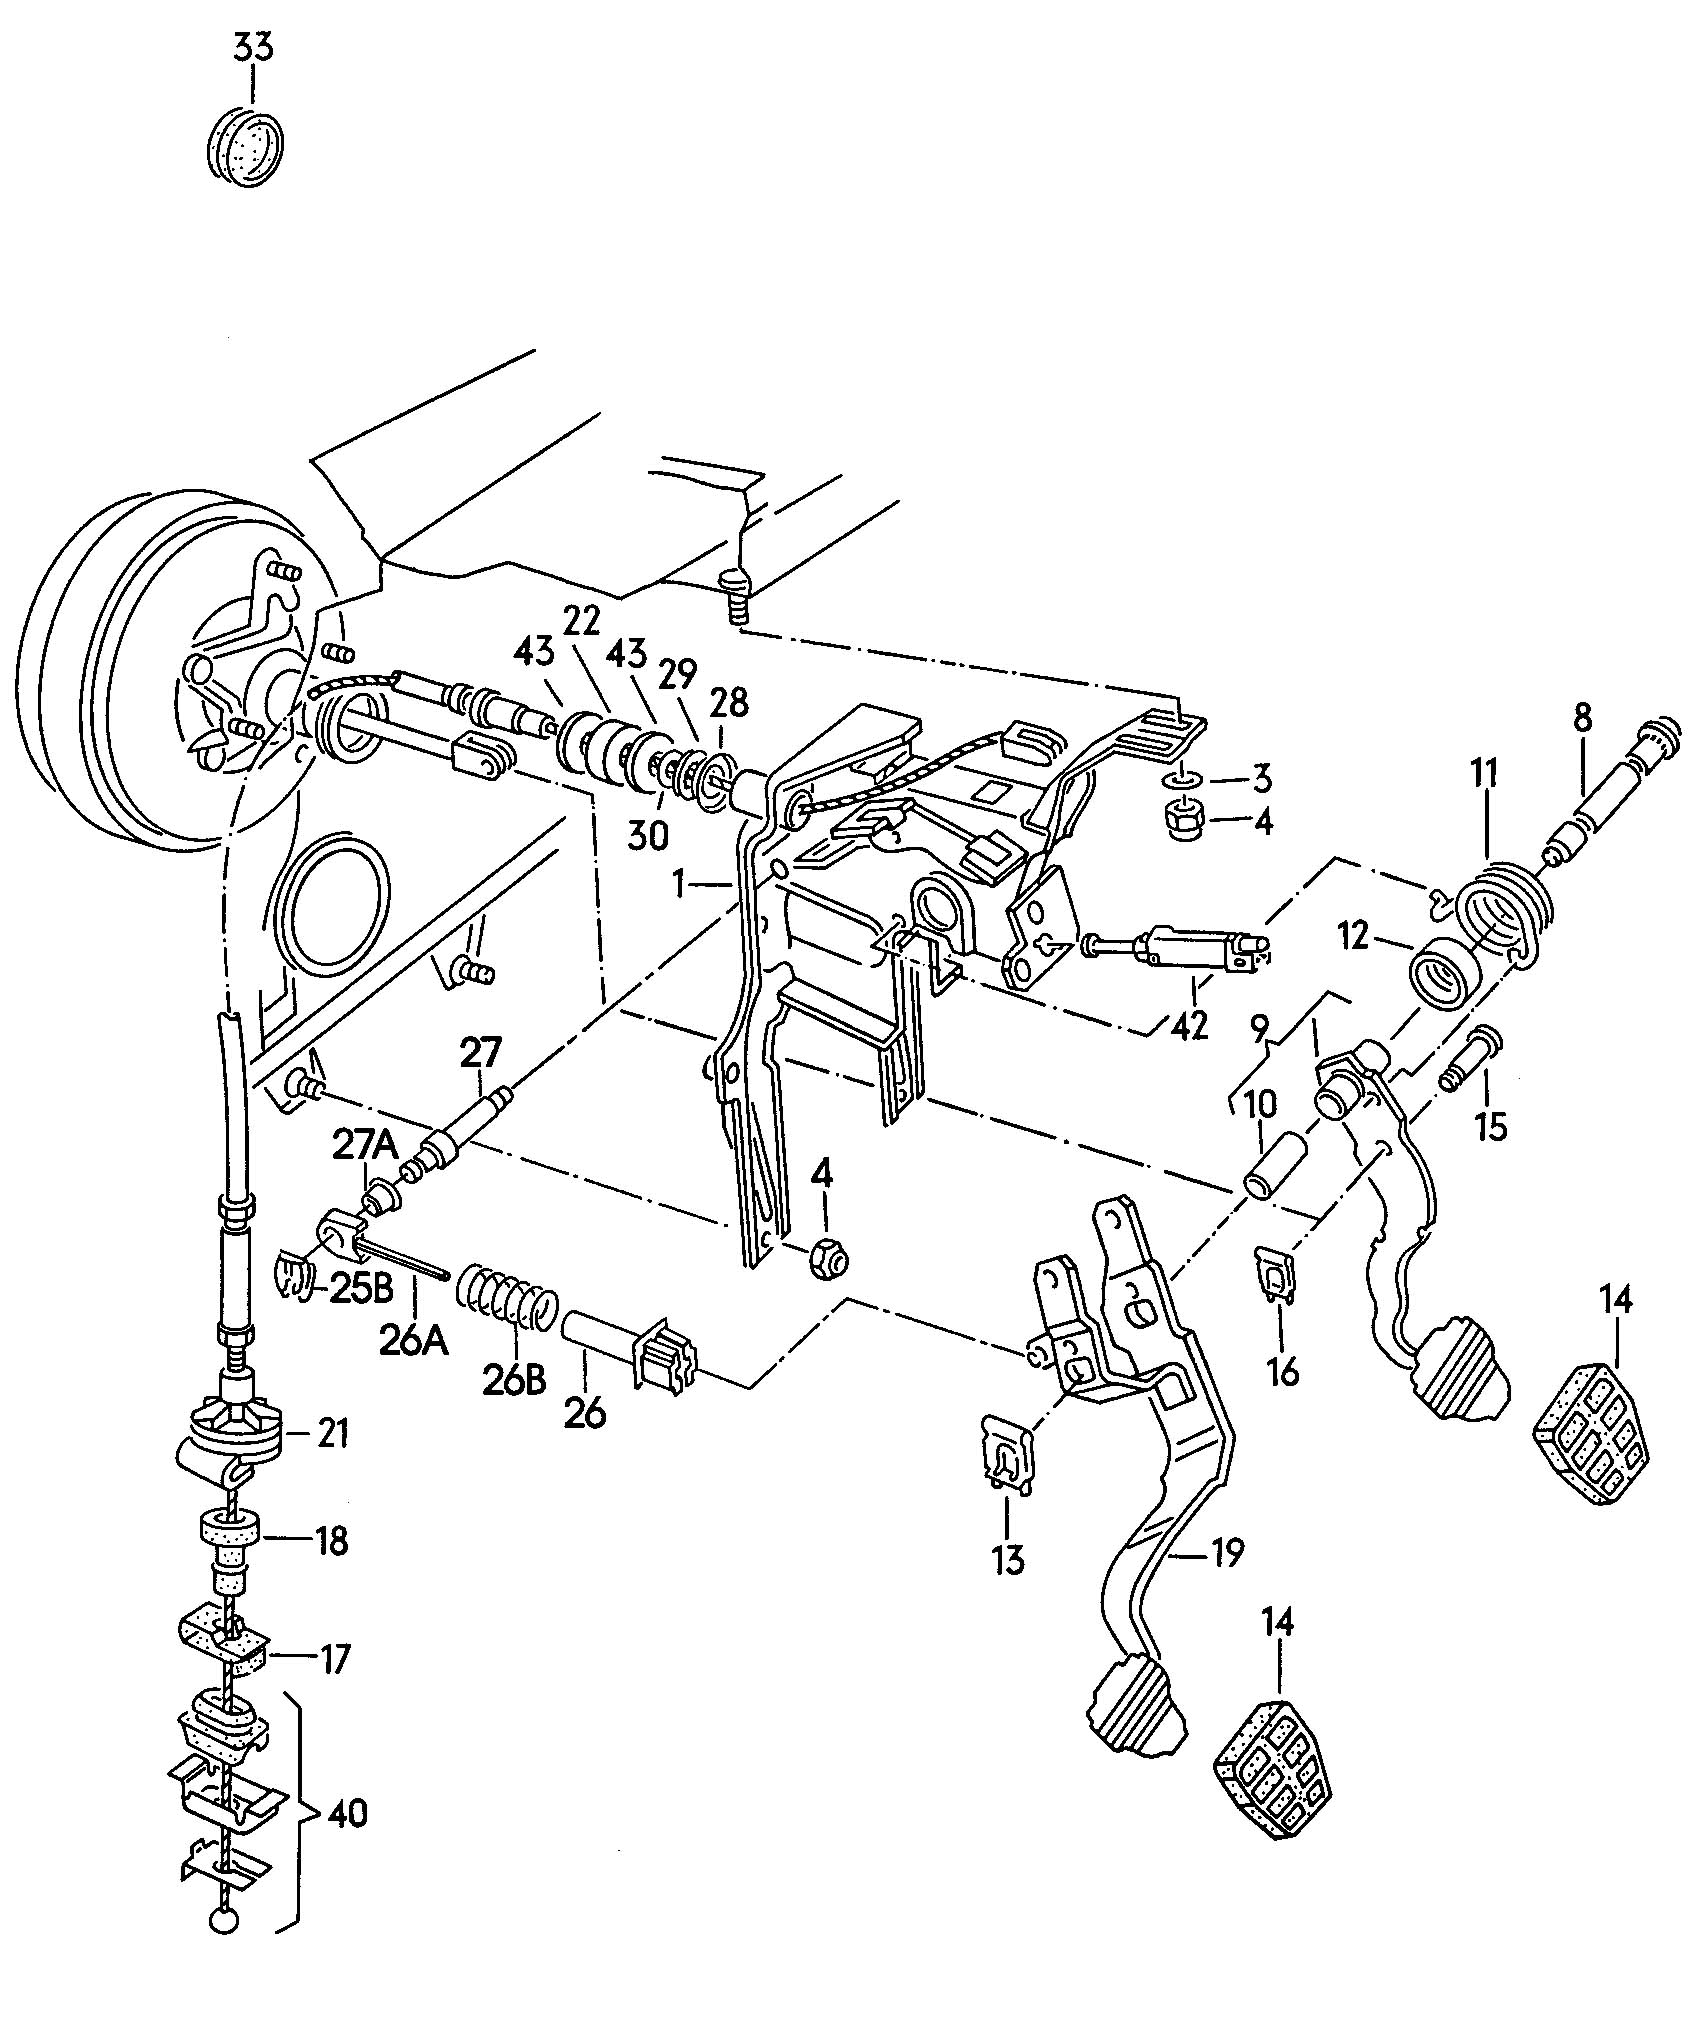 Impala Clutch Linkage Diagram Free Download Wiring Schematic additionally Vw Beetle Horn Wiring Diagram together with 1966 Pontiac Gto Radiator On Wiring Diagram For 65 in addition Vw Super Beetle Parts furthermore Vw Bus Steering Box Rebuild. on vw super beetle steering column wiring diagram